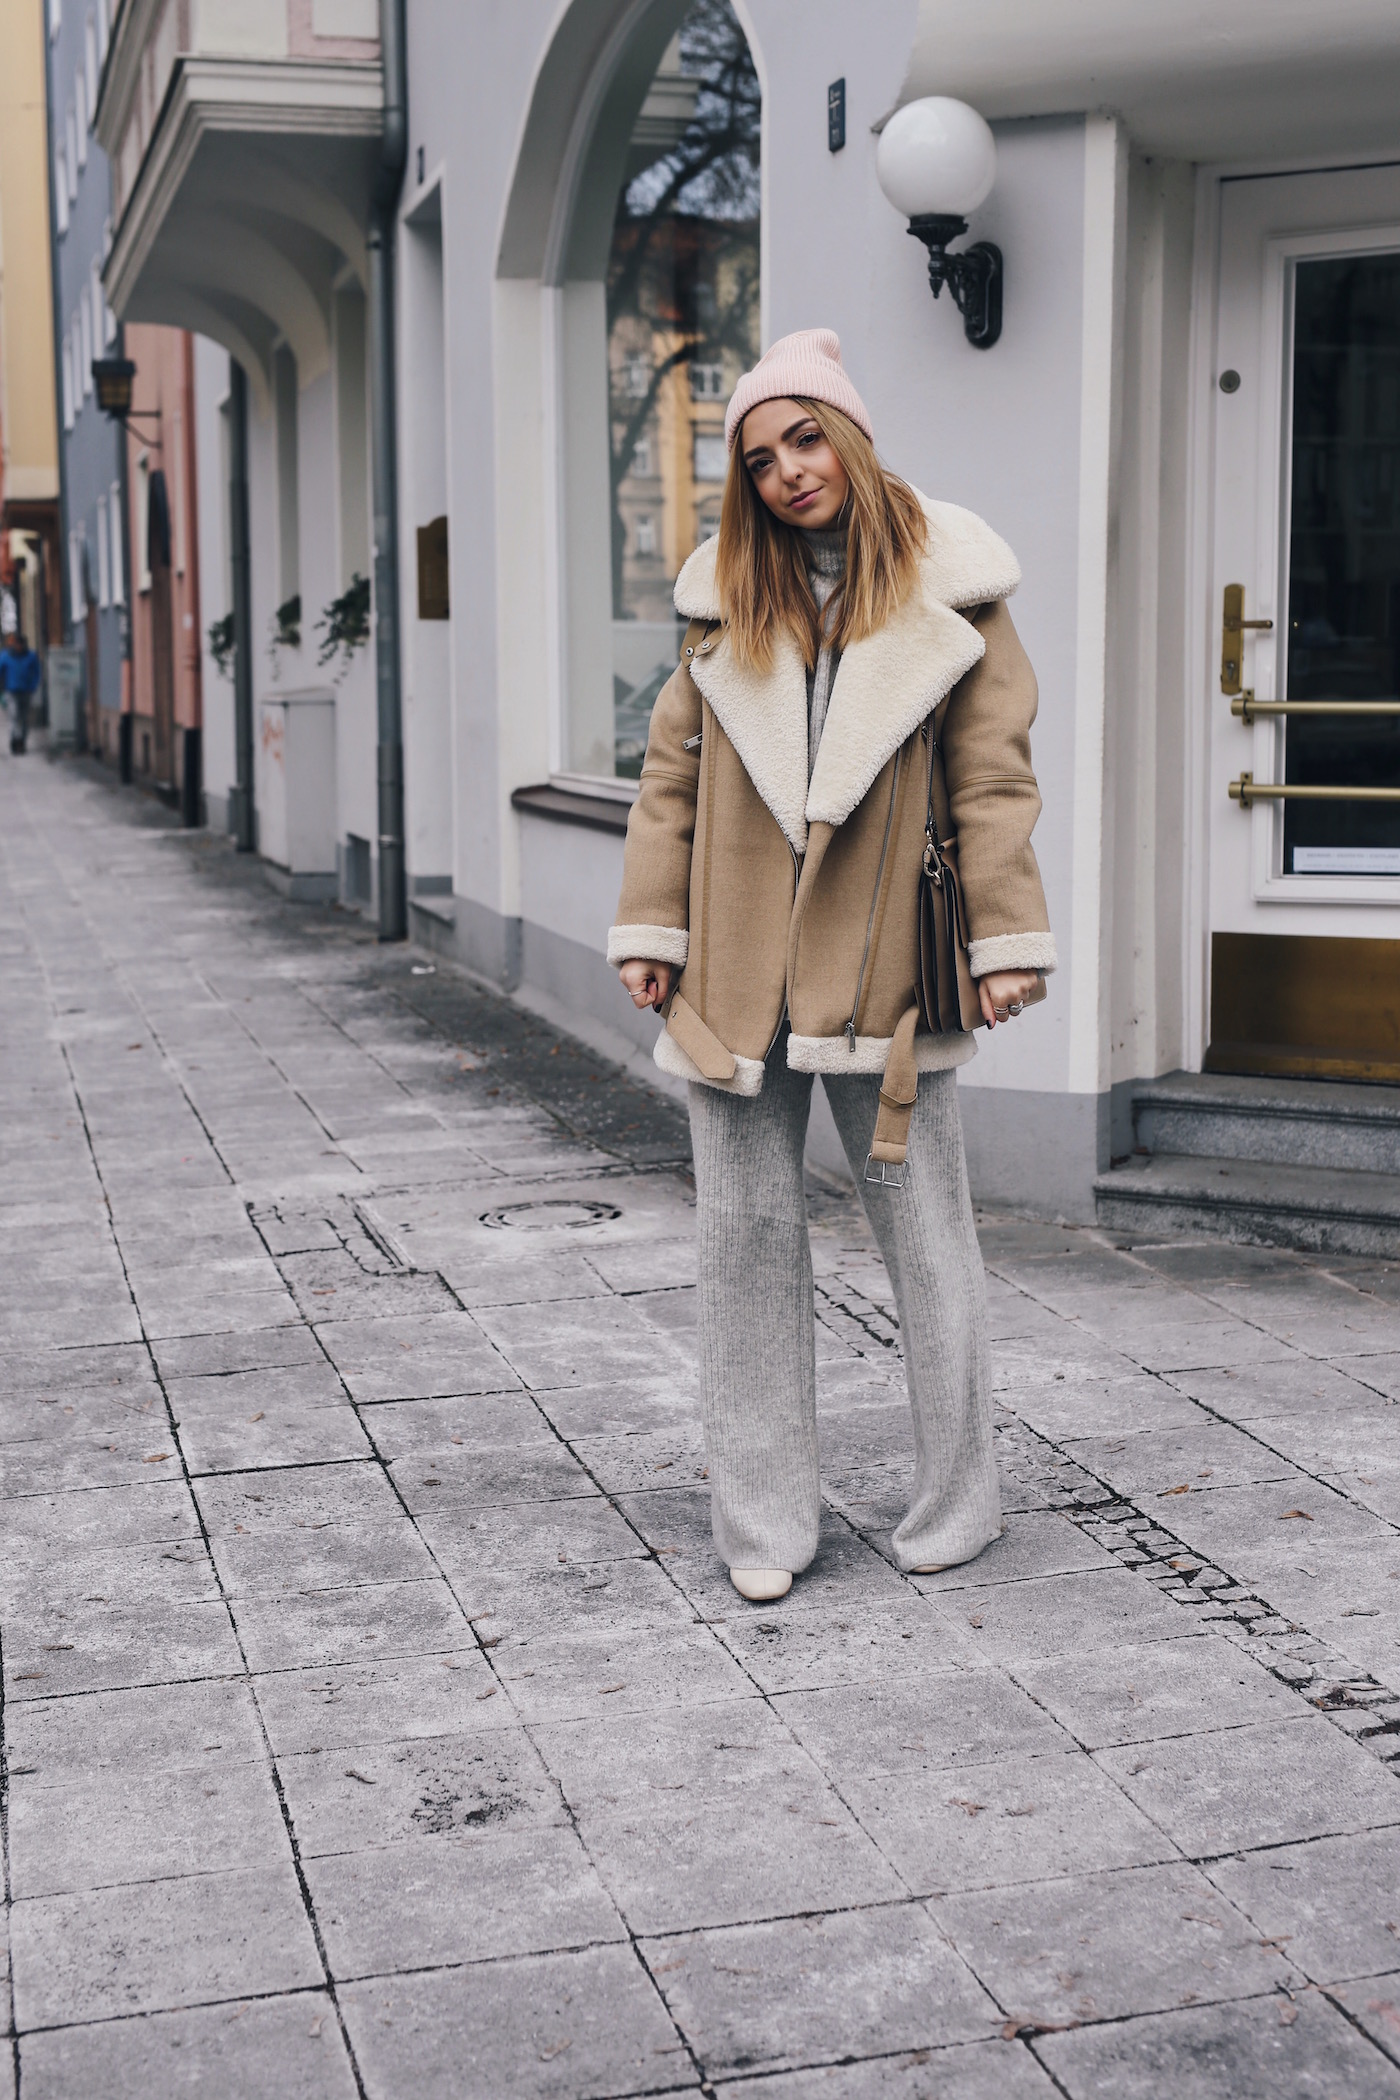 Knit Two Piece Pink Cap Zara Shearling Jacket Outfit Street Style Want Get Repeat